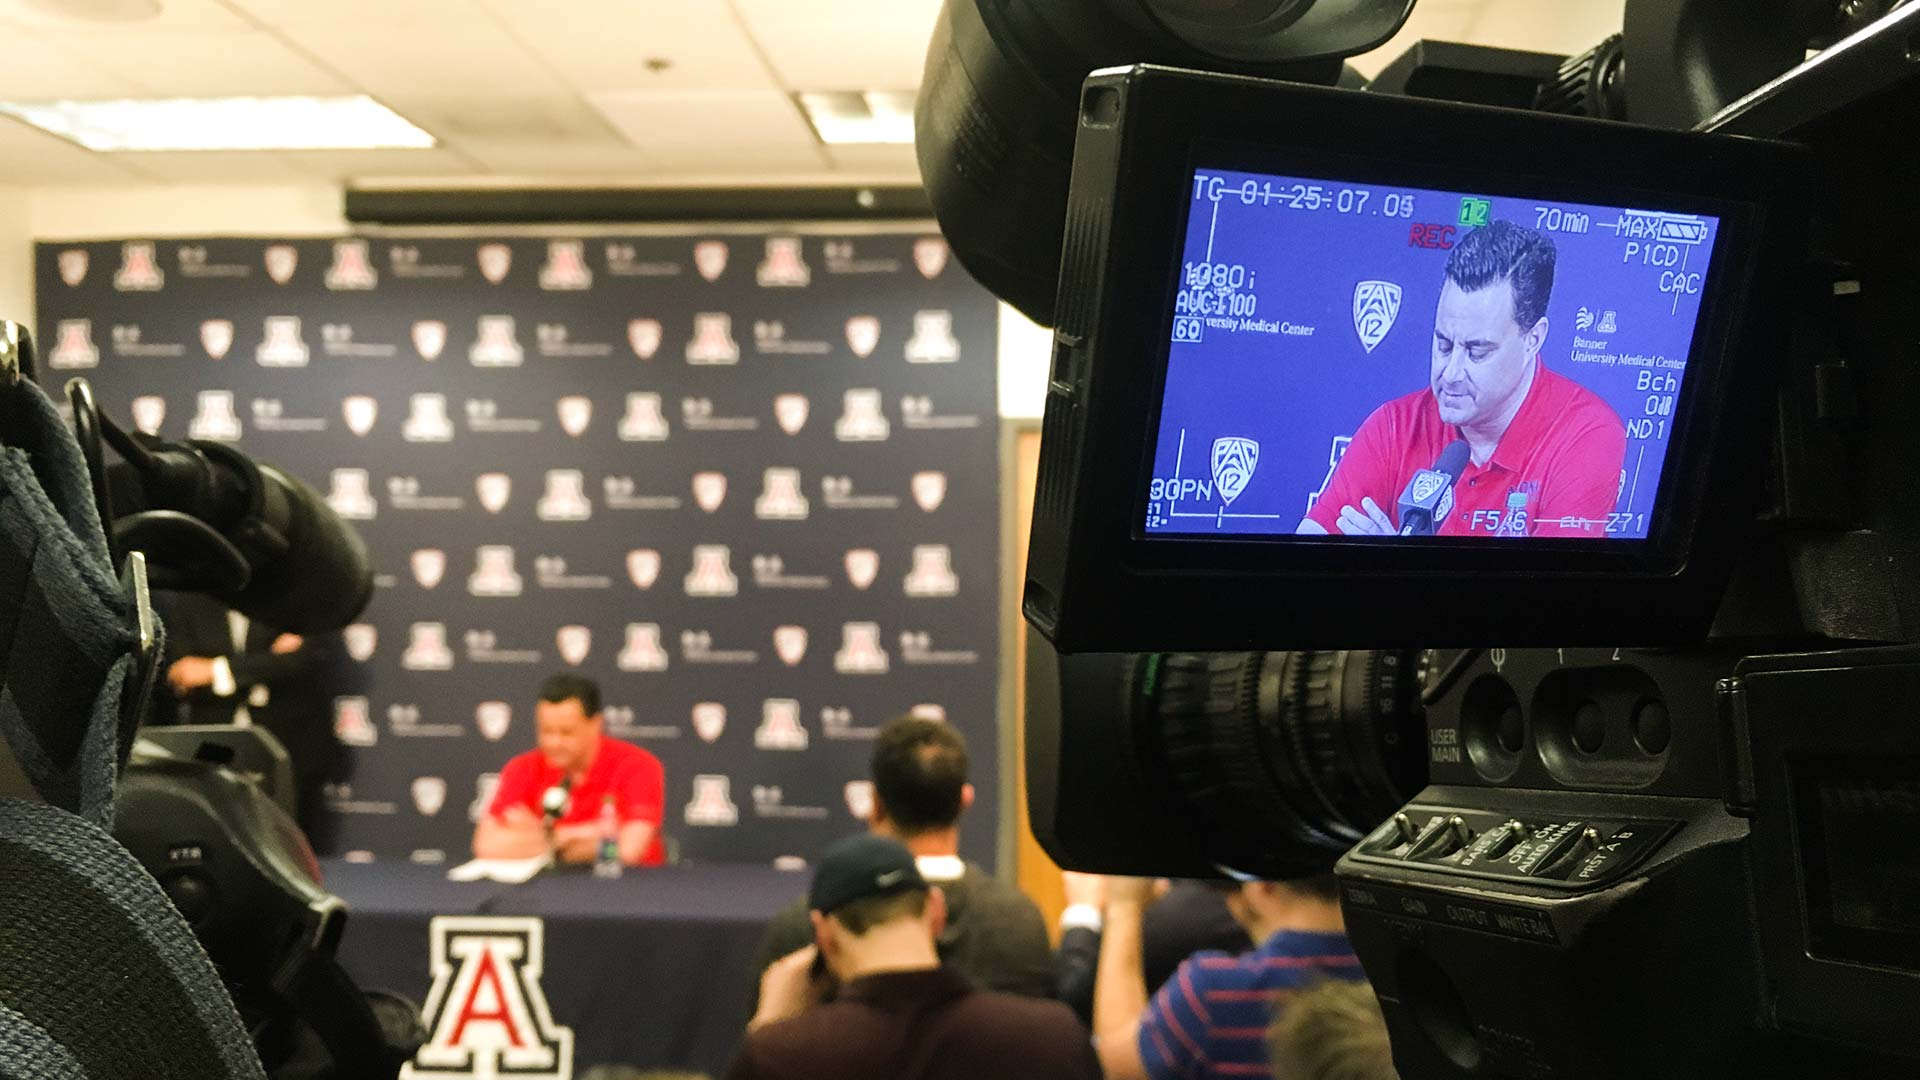 University of Arizona men's basketball coach Sean Miller at a March 1 press conference.